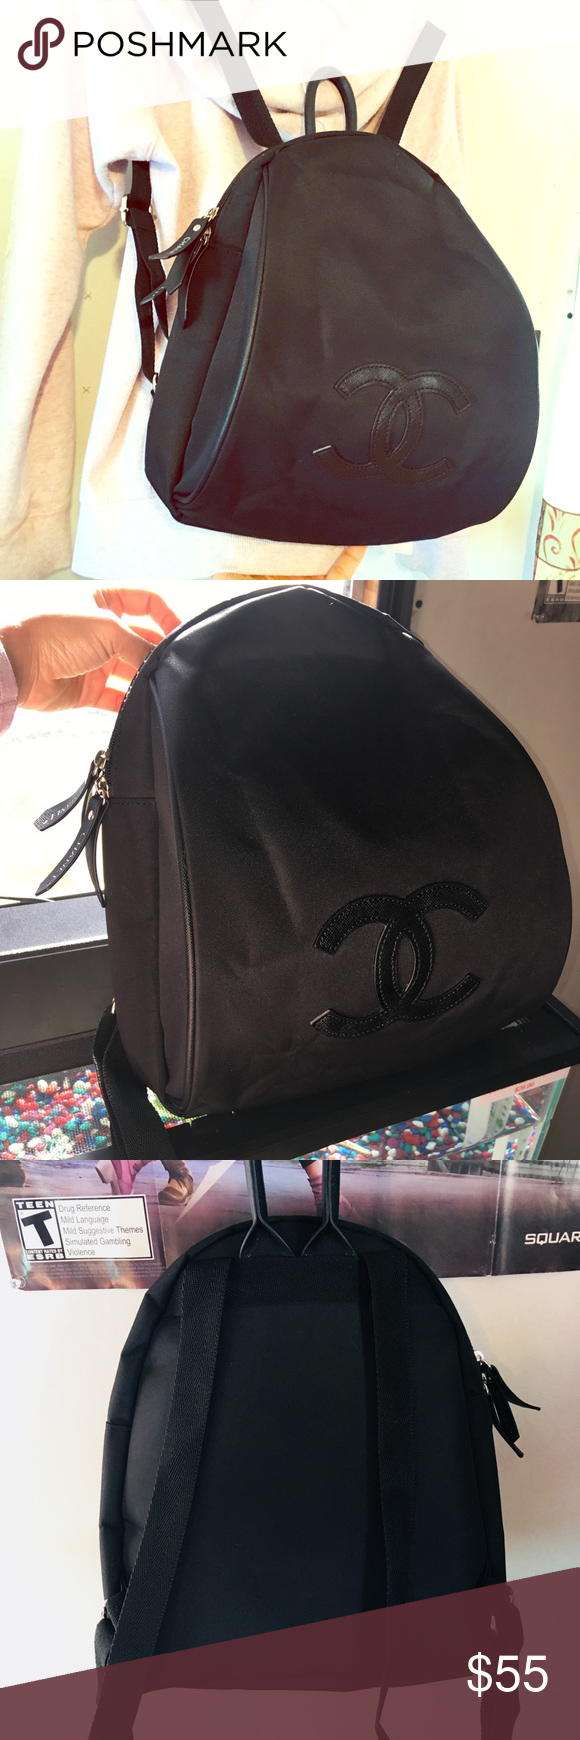 cee67afe3bf6 Used Chanel backpack VIP GIFT Pls READ this is VIP GIFT Nylon Backpack ,  school bag